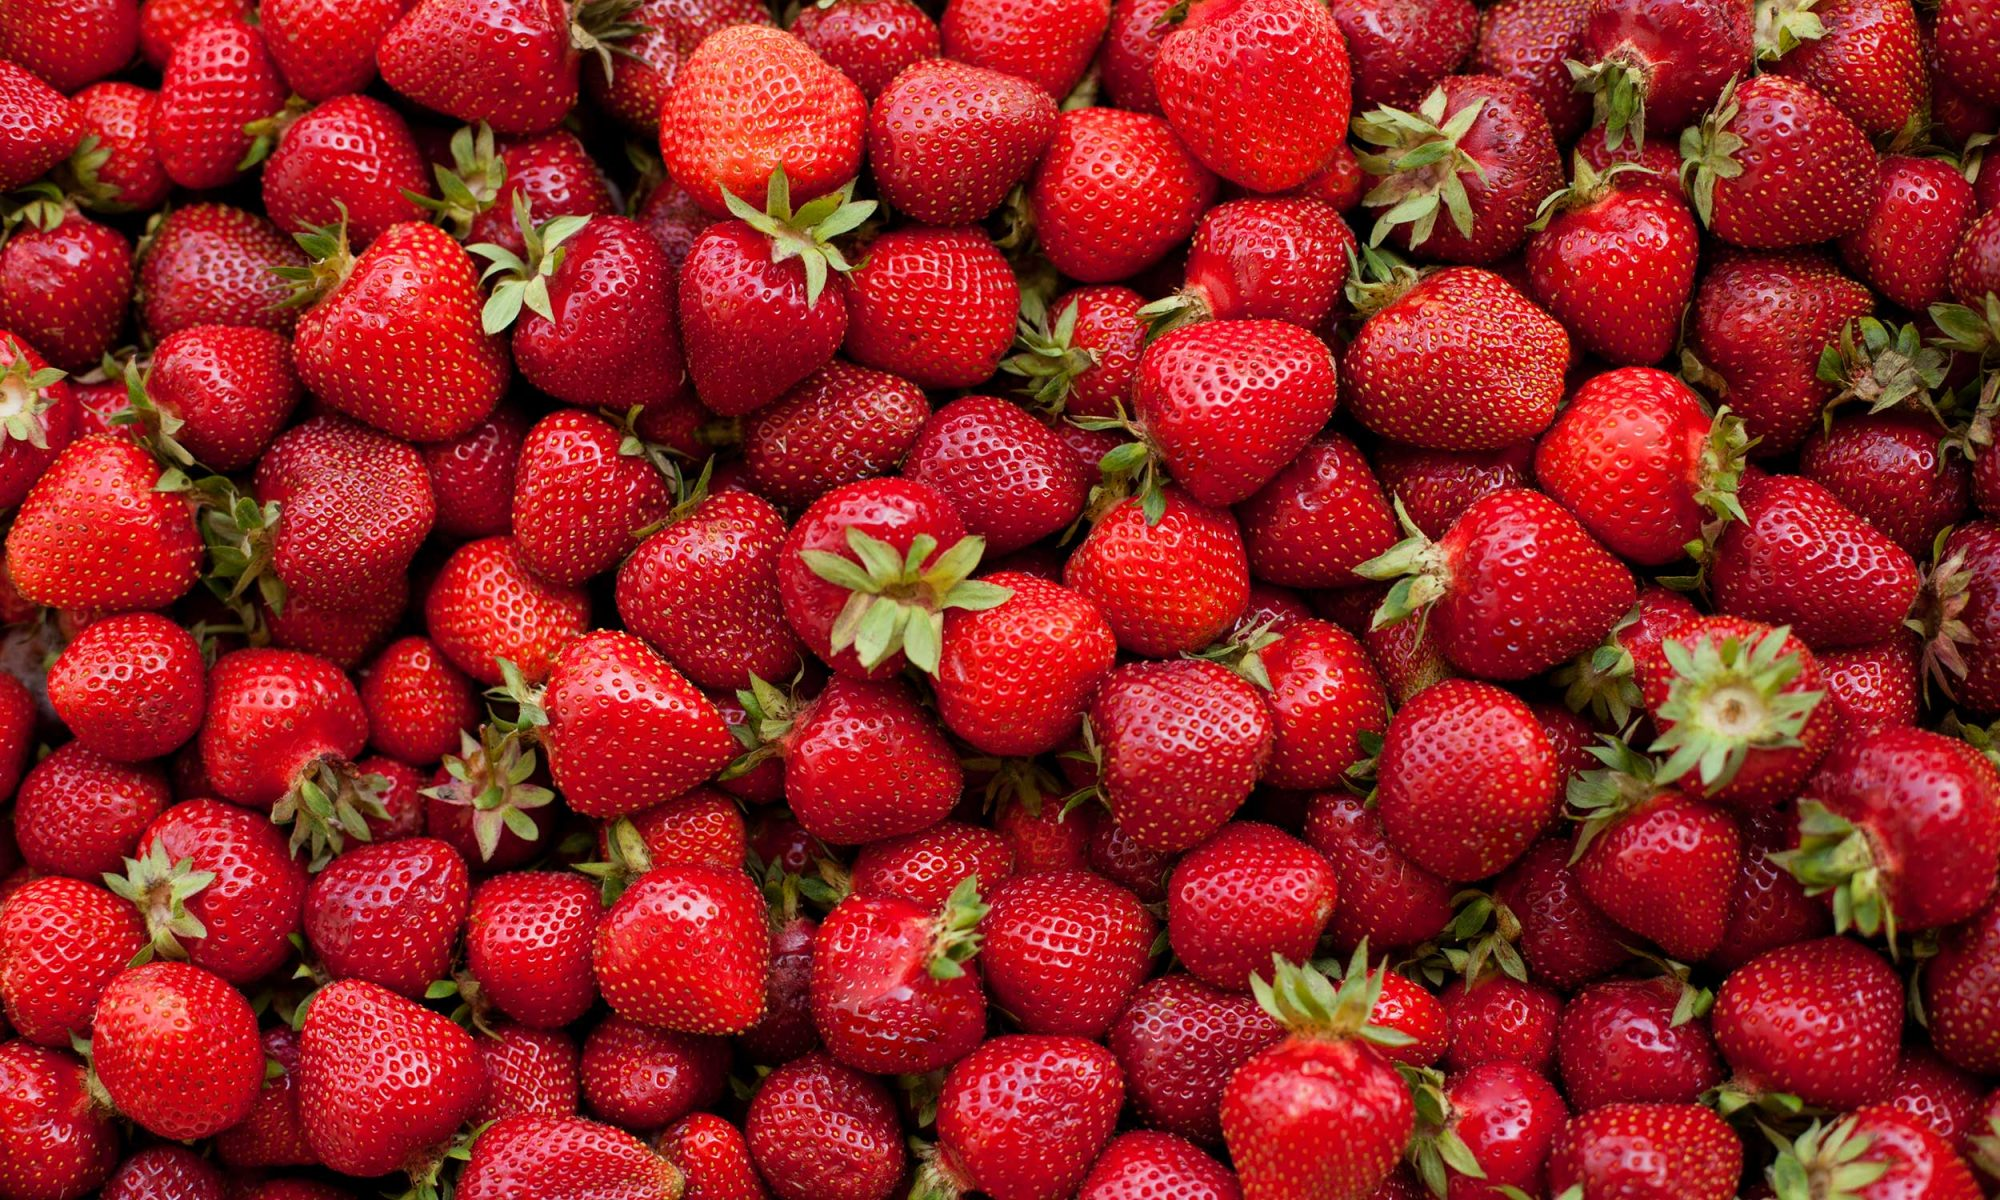 The useful strawberries Calorie. Contraindications. Strawberries with sugar 25